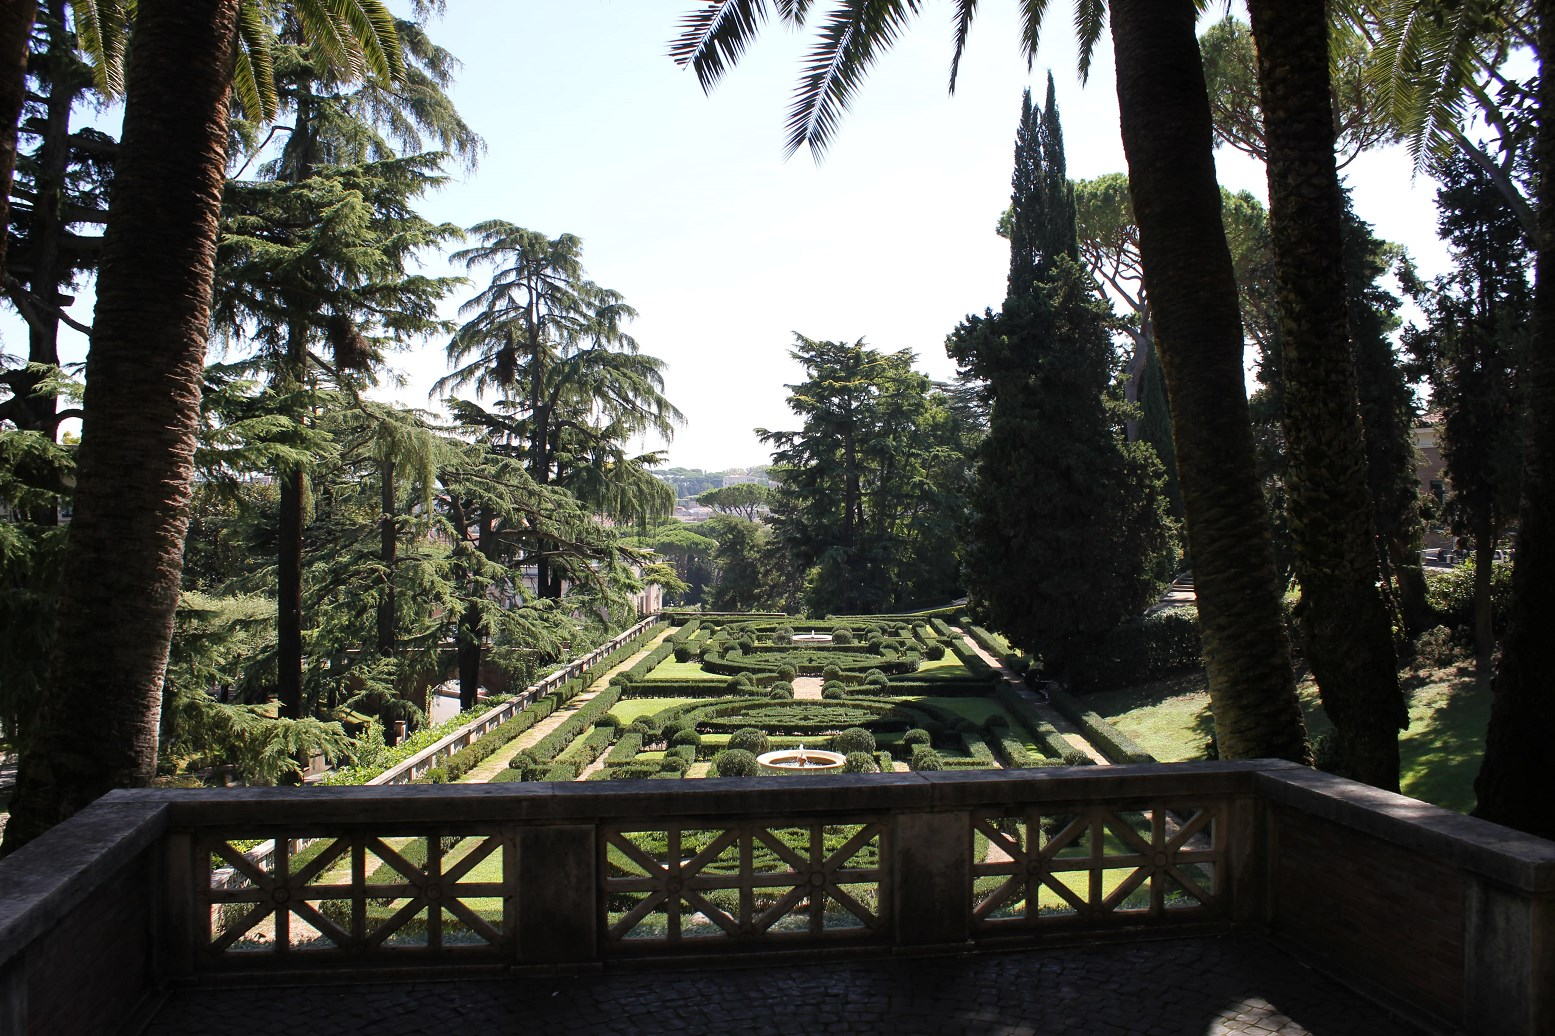 vatican gardens window view